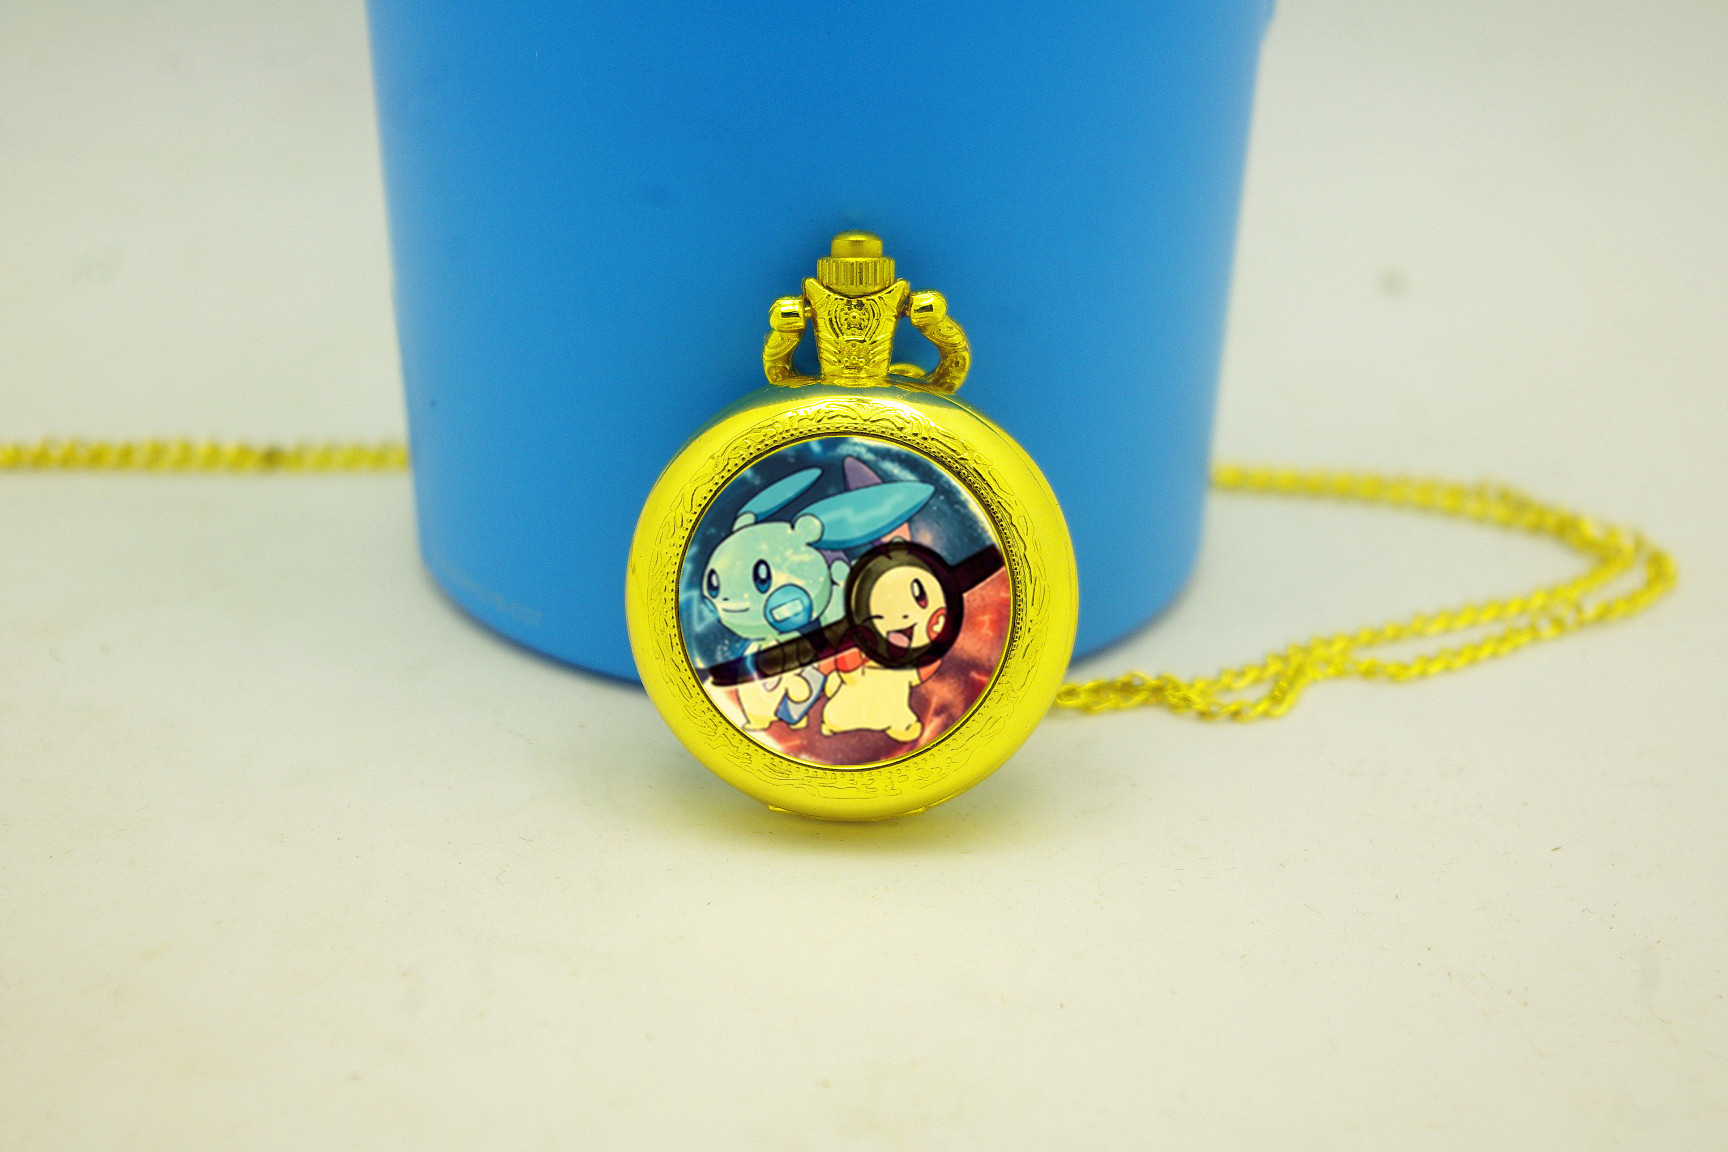 34a8f97fe Hot Sell Retro Charm Pokeball Prasle&Minun Pocket Watches Unique ...